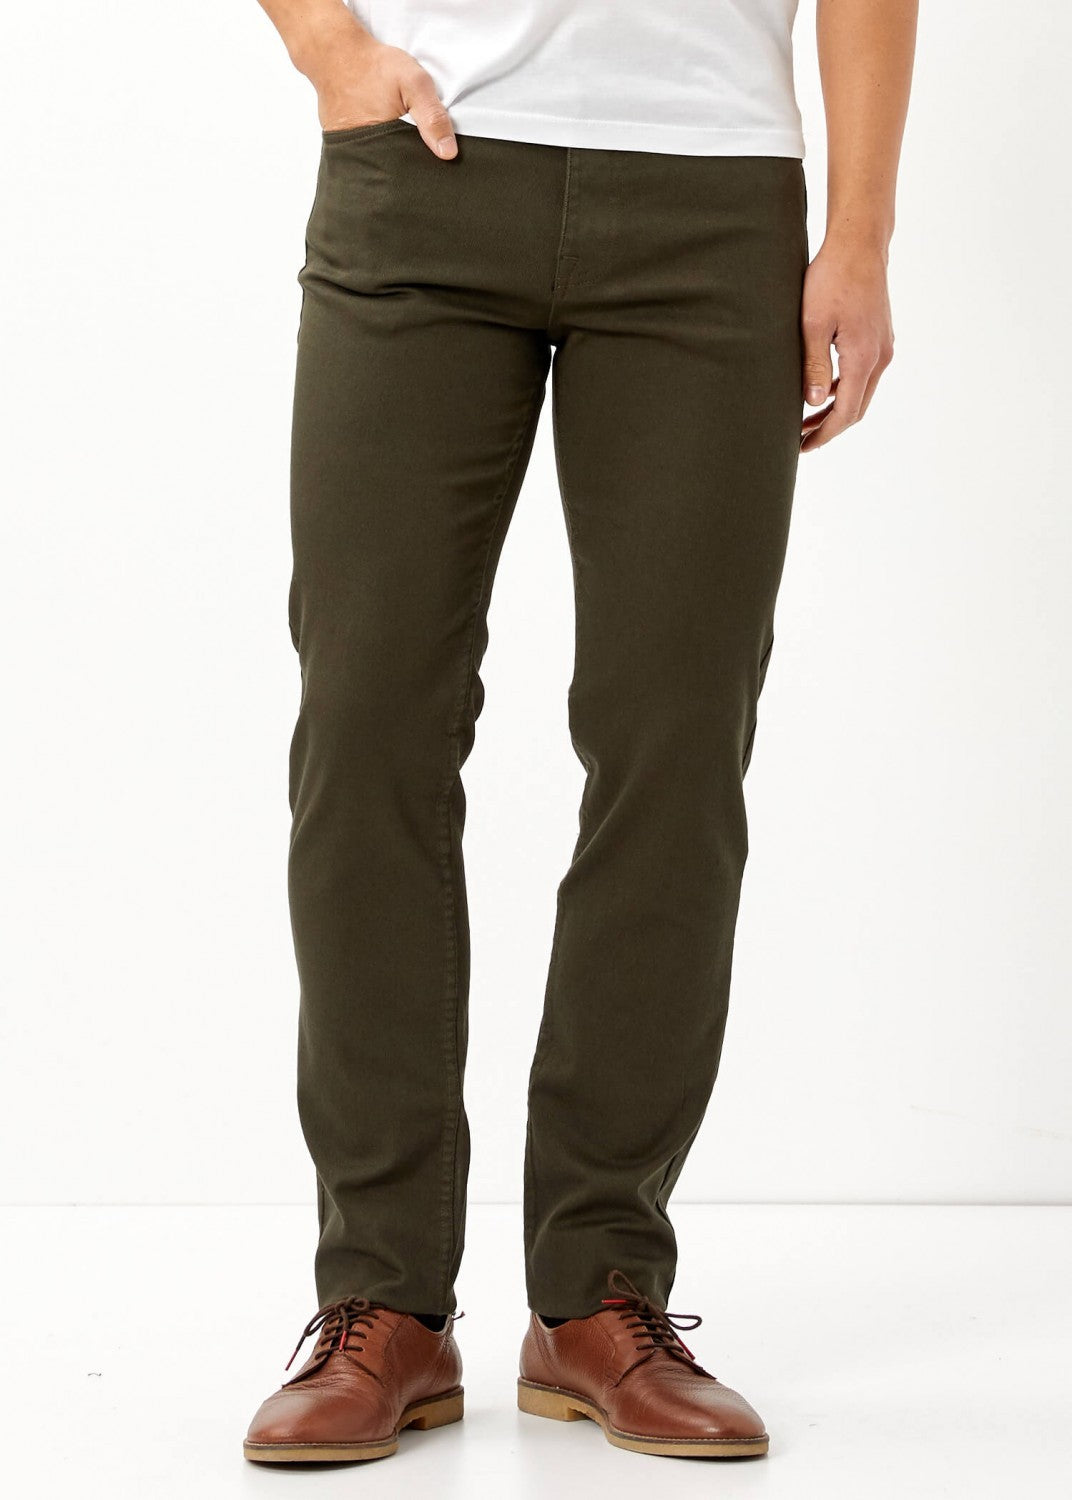 Men's Pocketed Khaki Slim Fit Pants - THE UNIQUE FIT